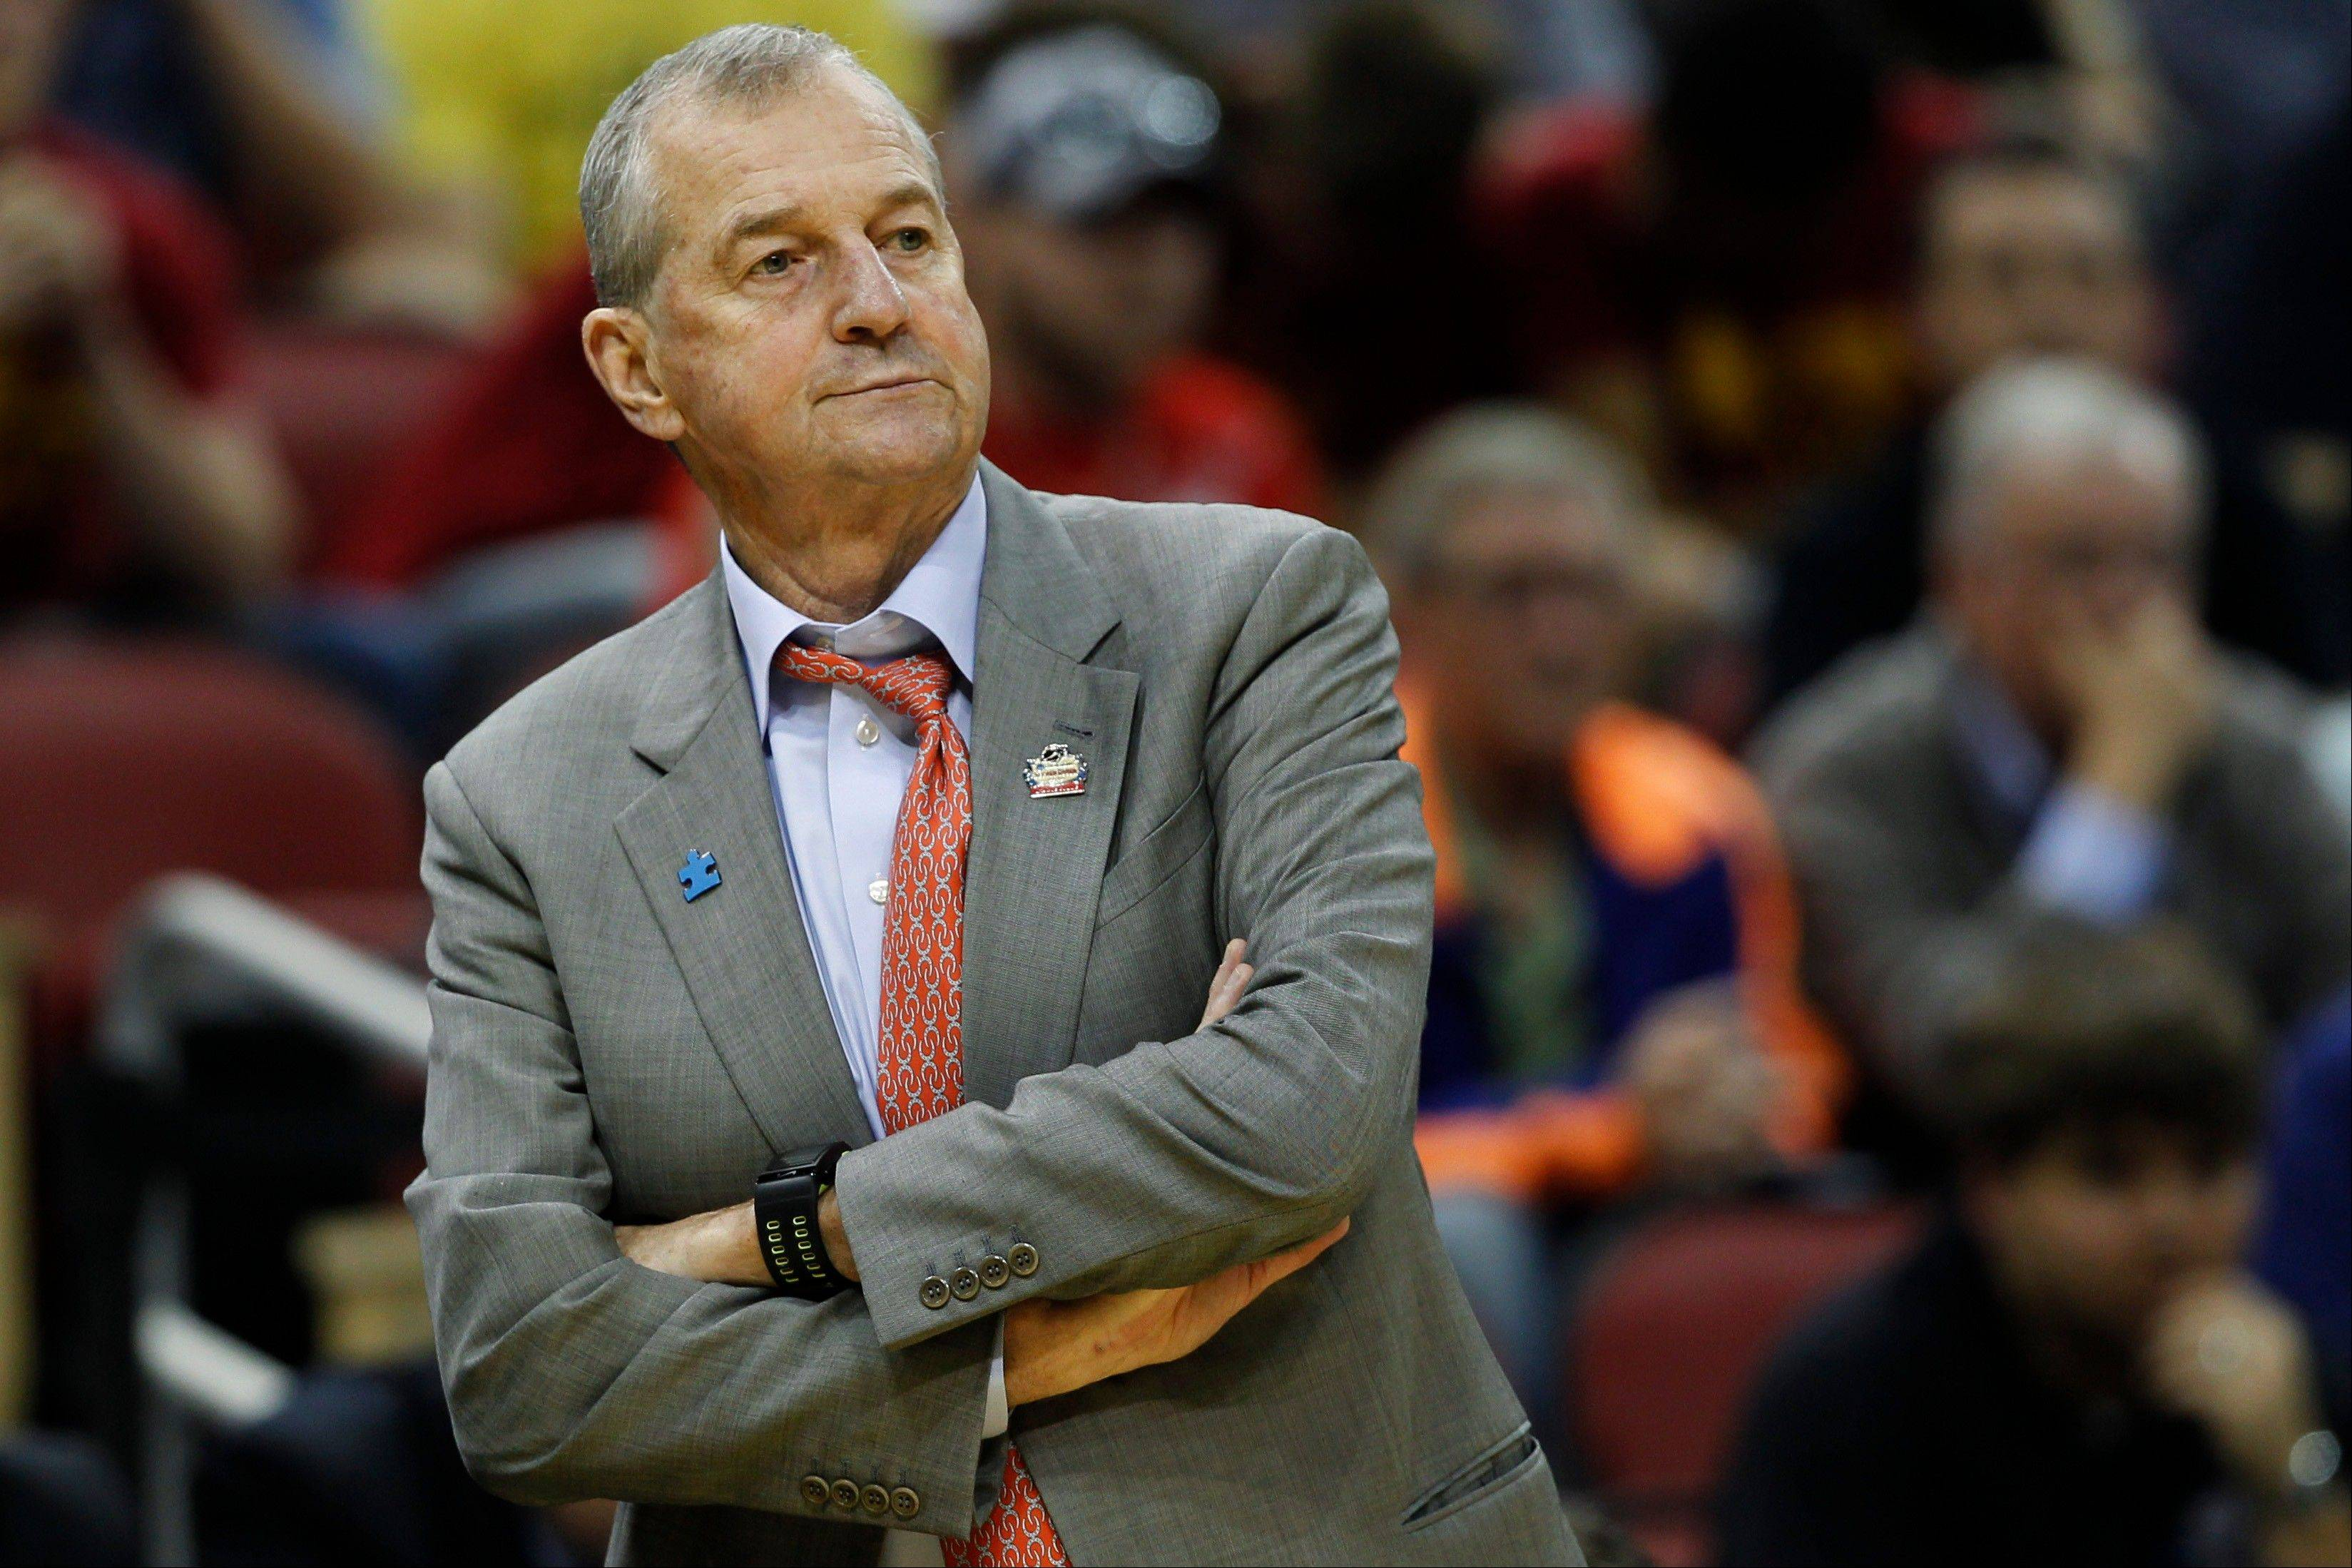 Connecticut head coach Jim Calhoun watches from the sideline during a second-round NCAA tournament game against Iowa State on March 15.